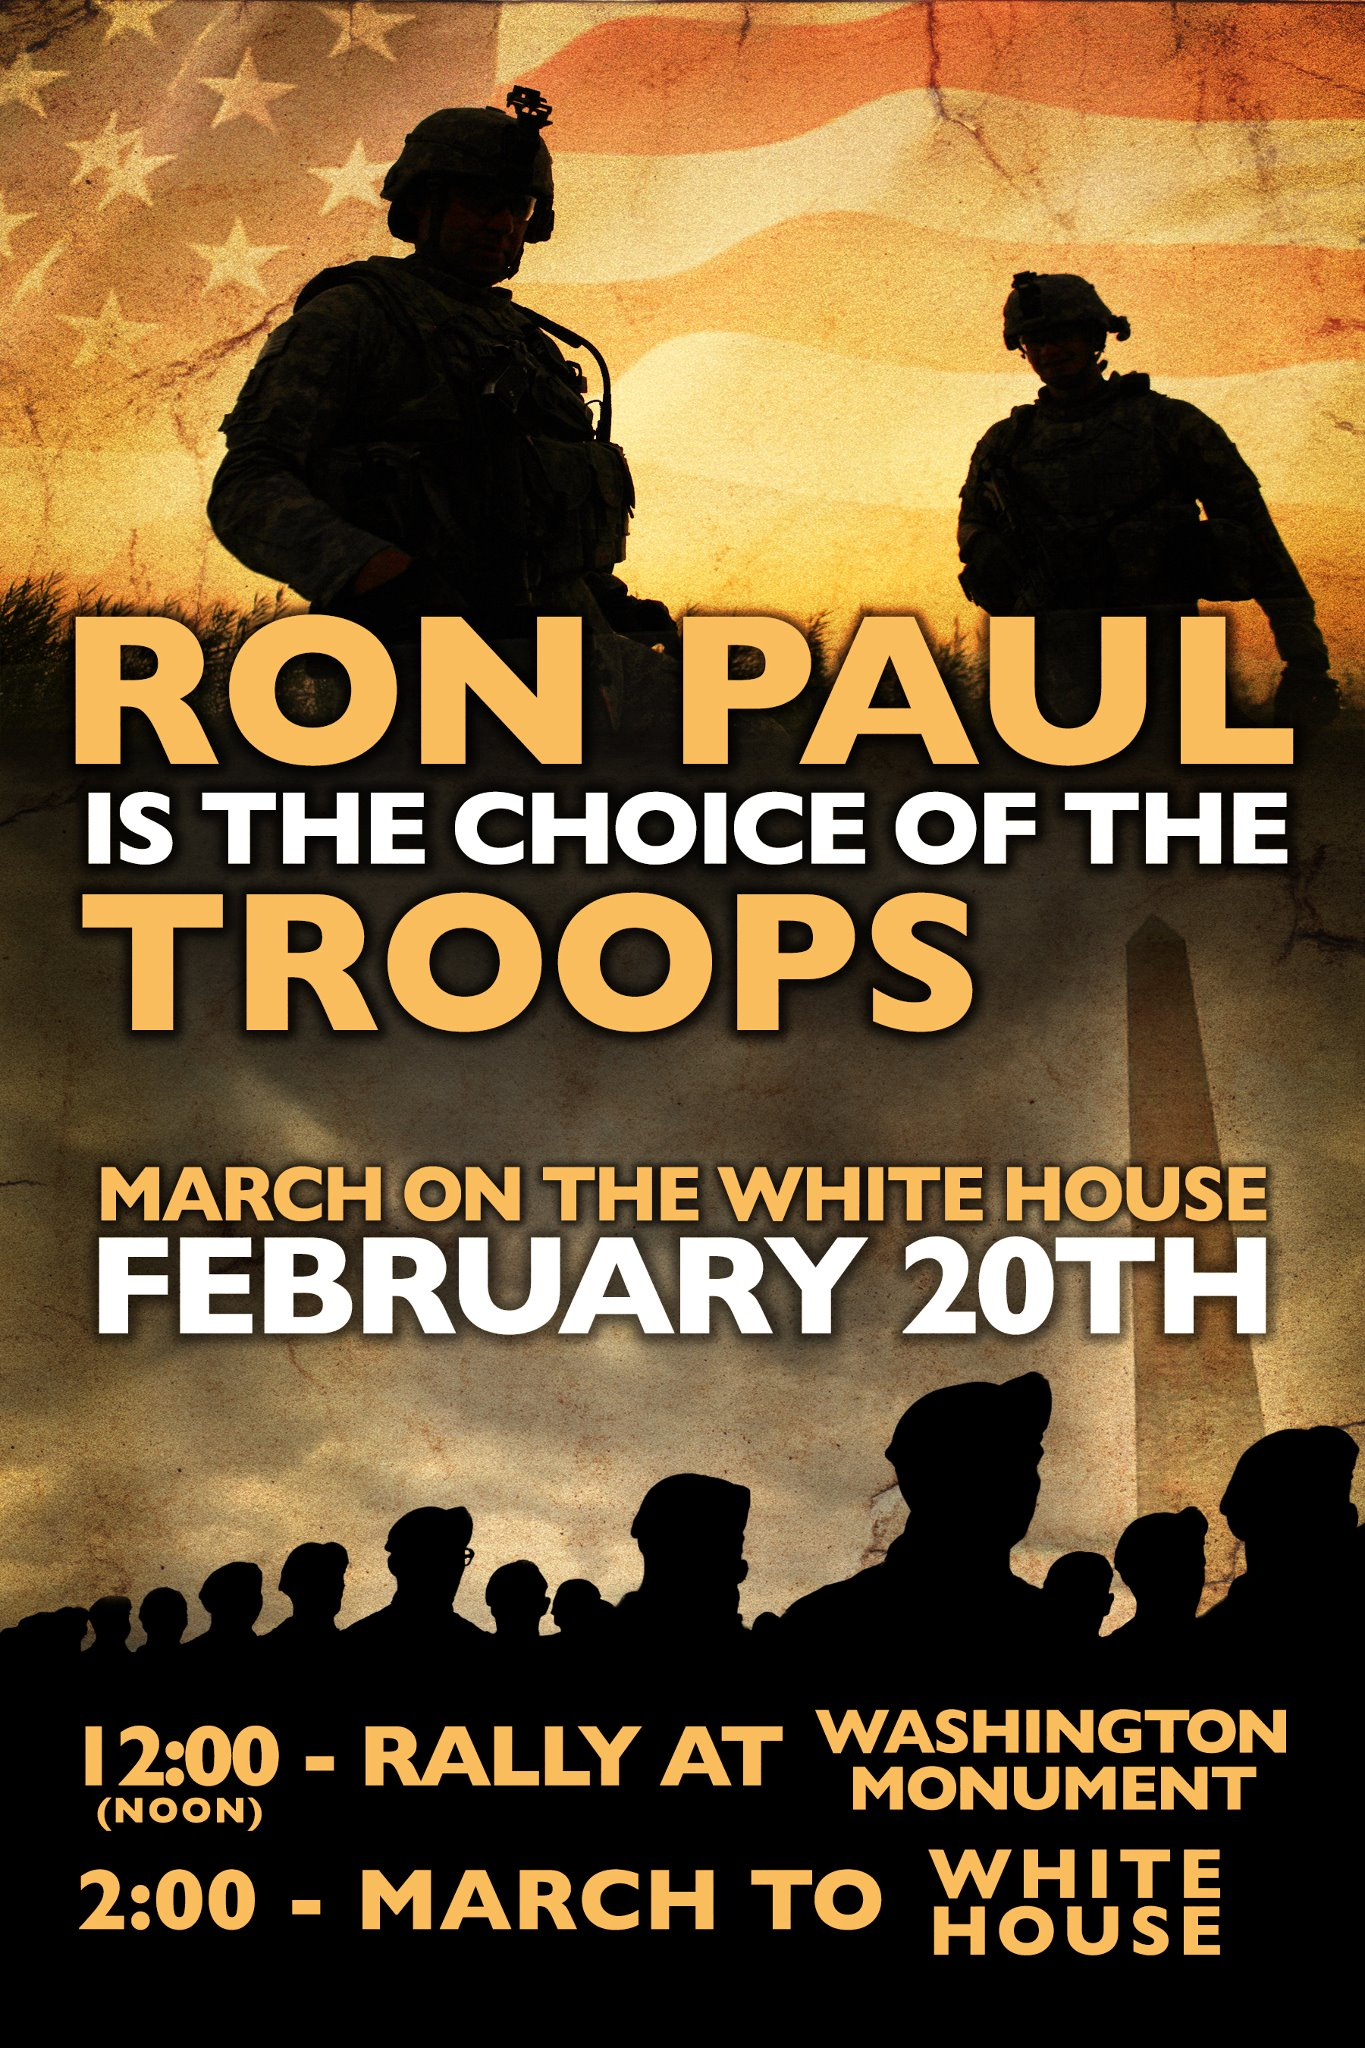 Veterans for Ron Paul March in Washington D.C. poster